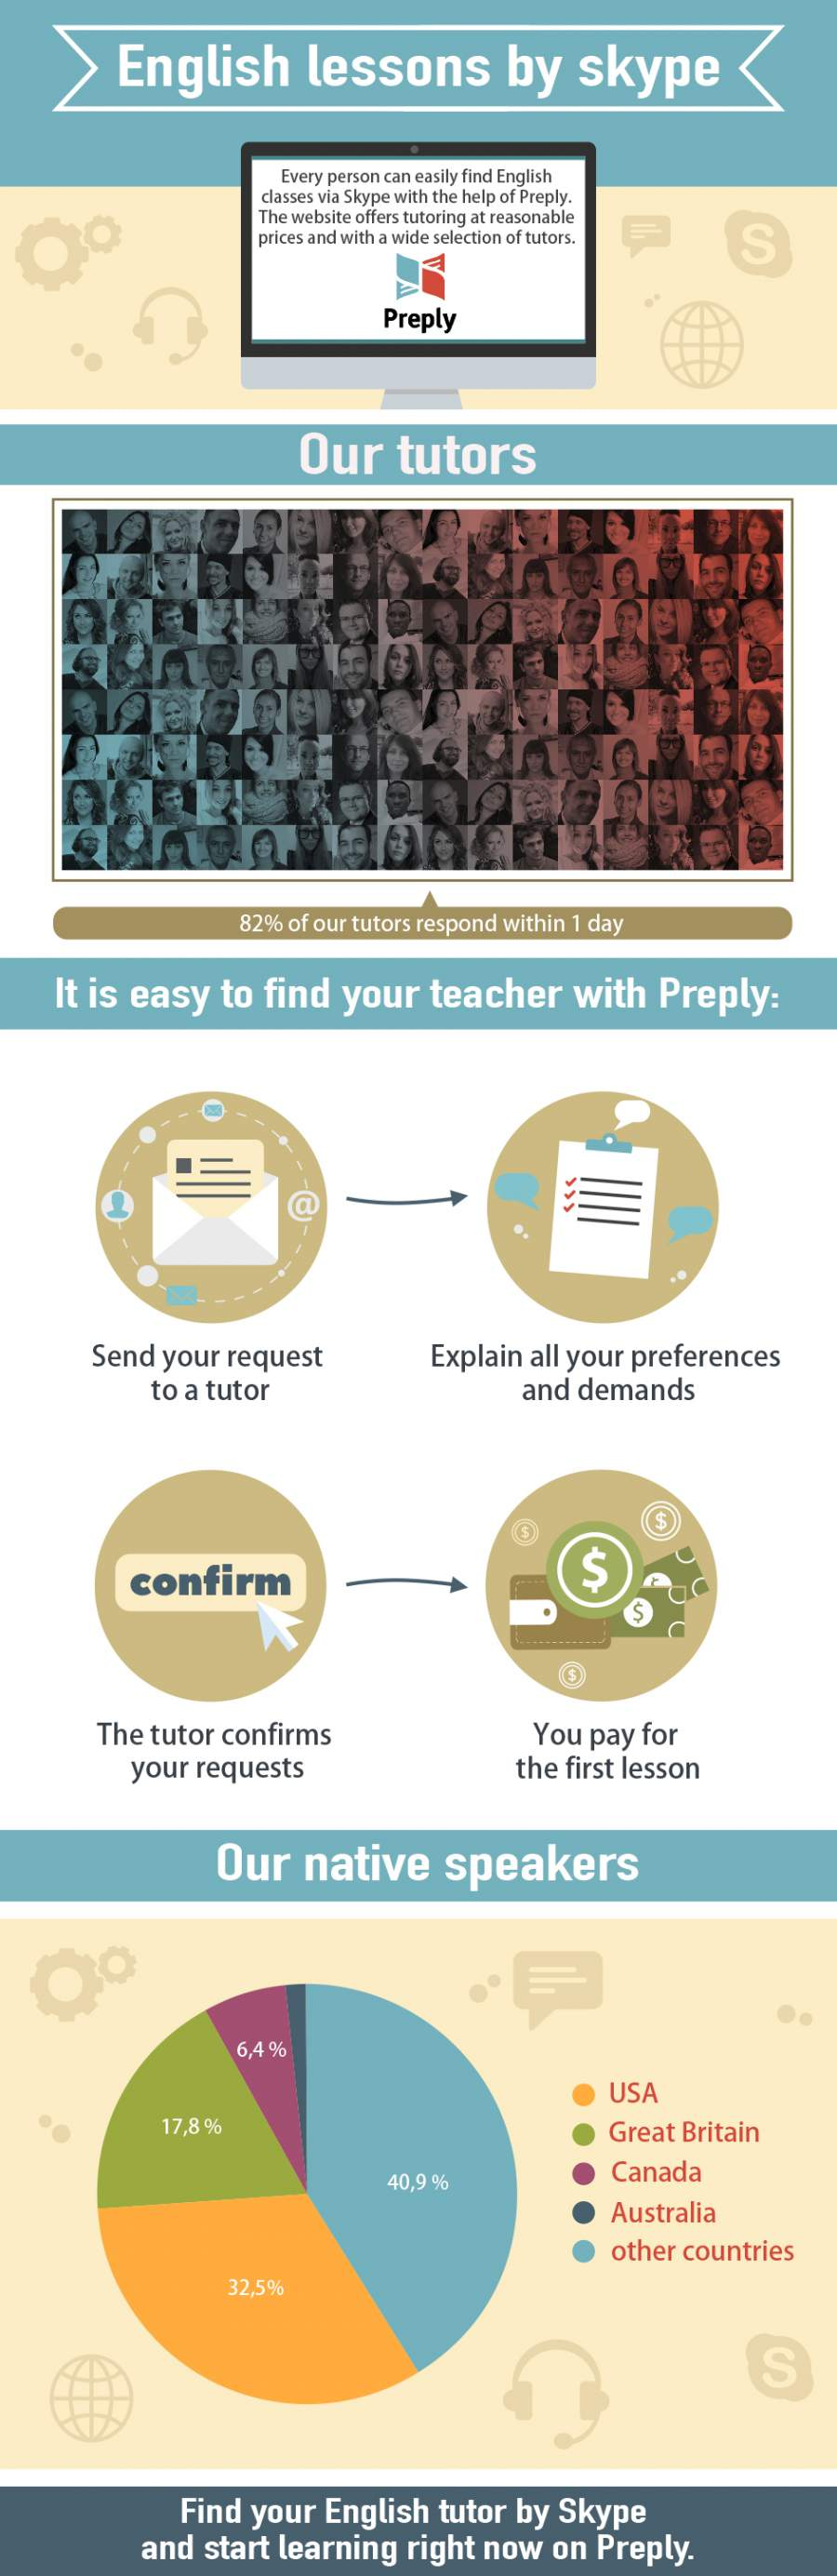 English lessons by skype Infographic Portal English